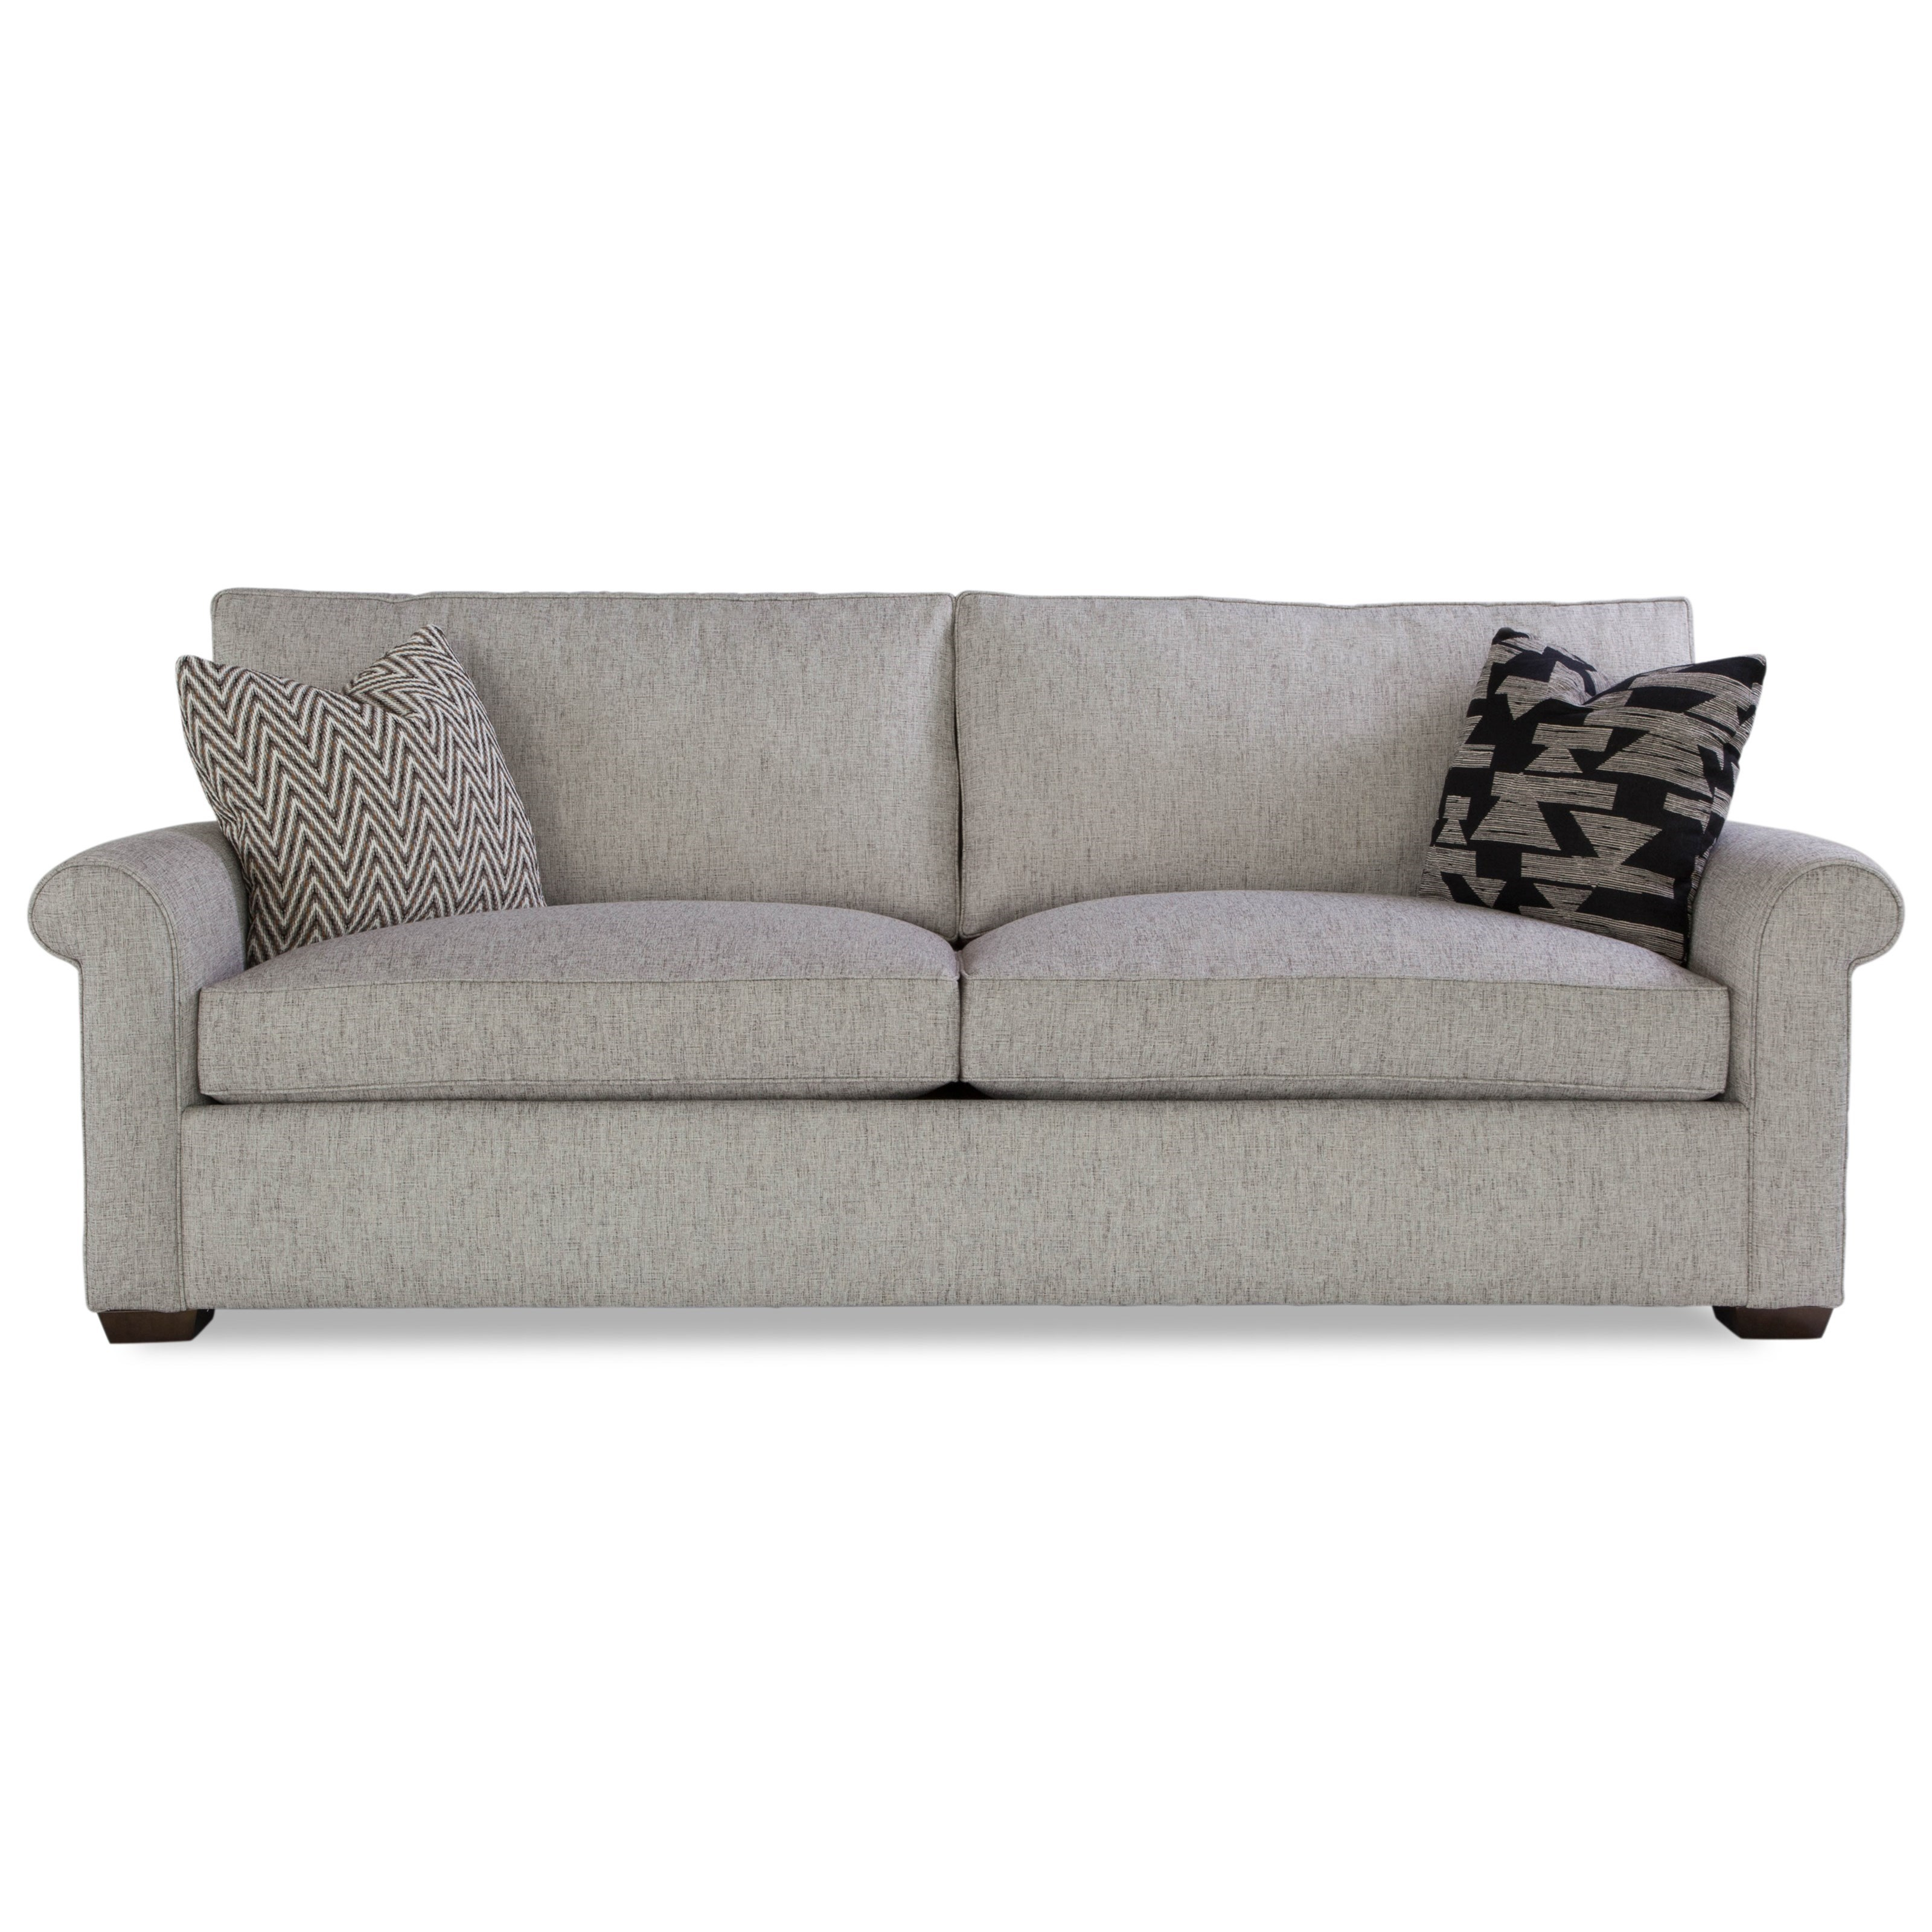 Plush Two Cushion Sofa w/ Rolled Arms by Huntington House at Belfort Furniture